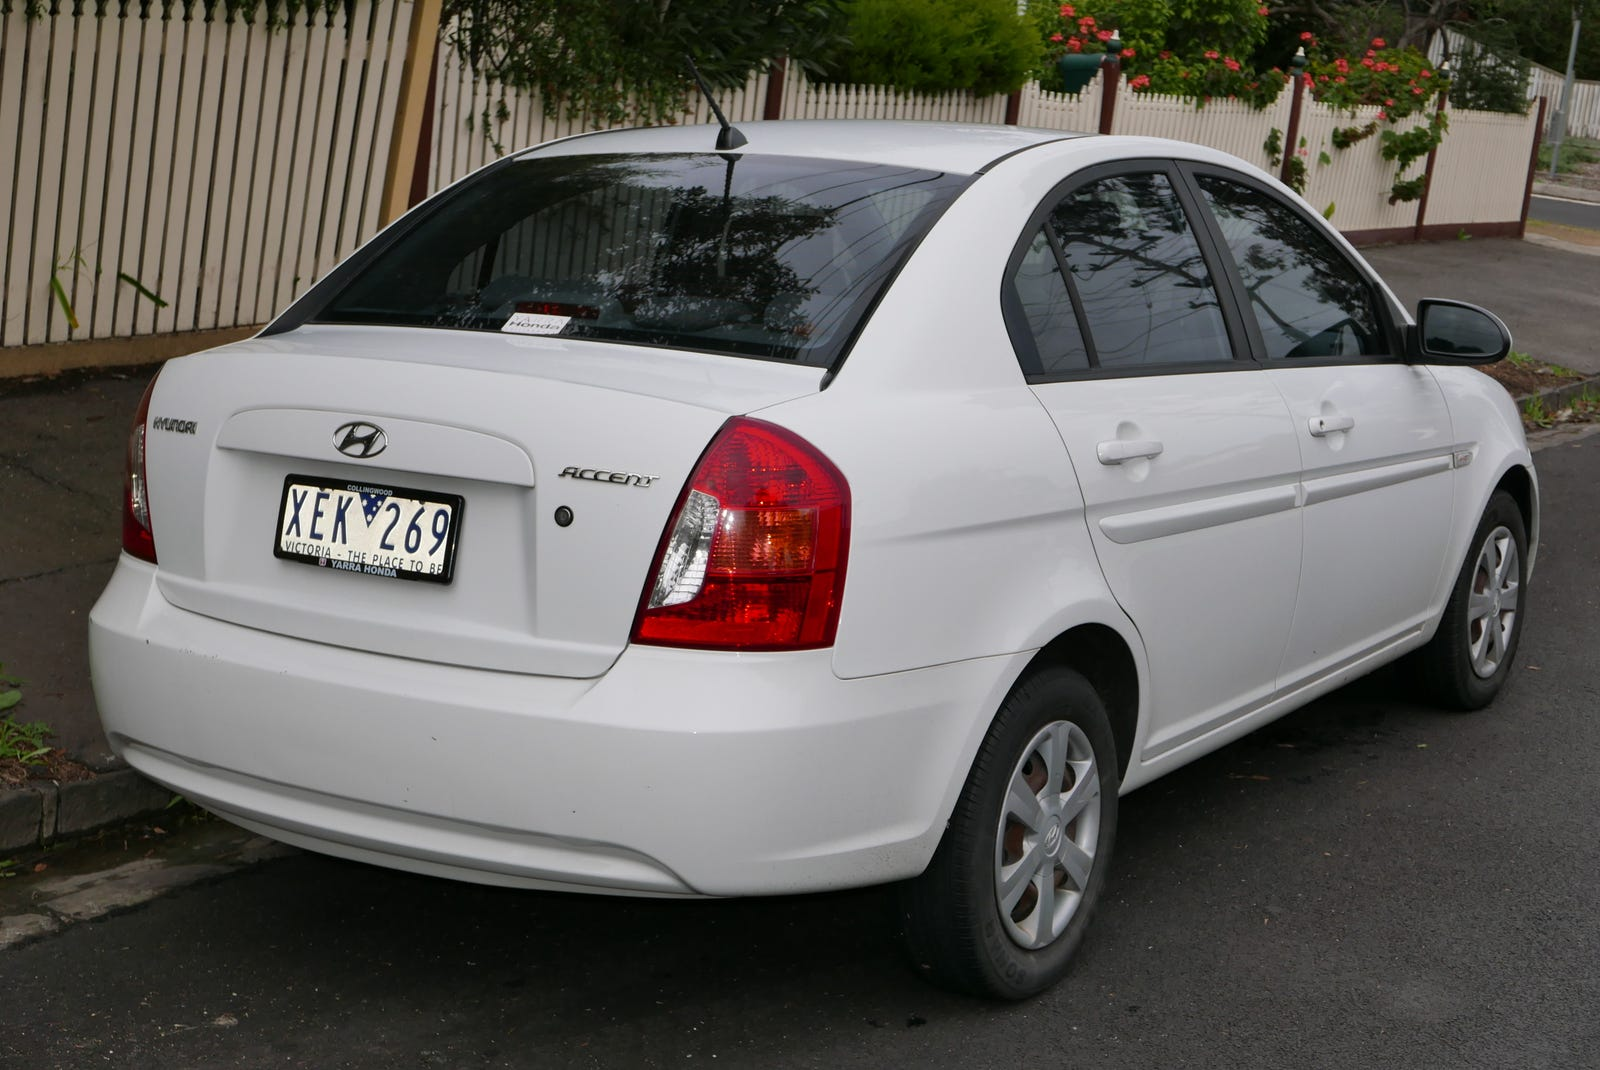 Australian market Accent sedan with amber-tinted rear turn signals